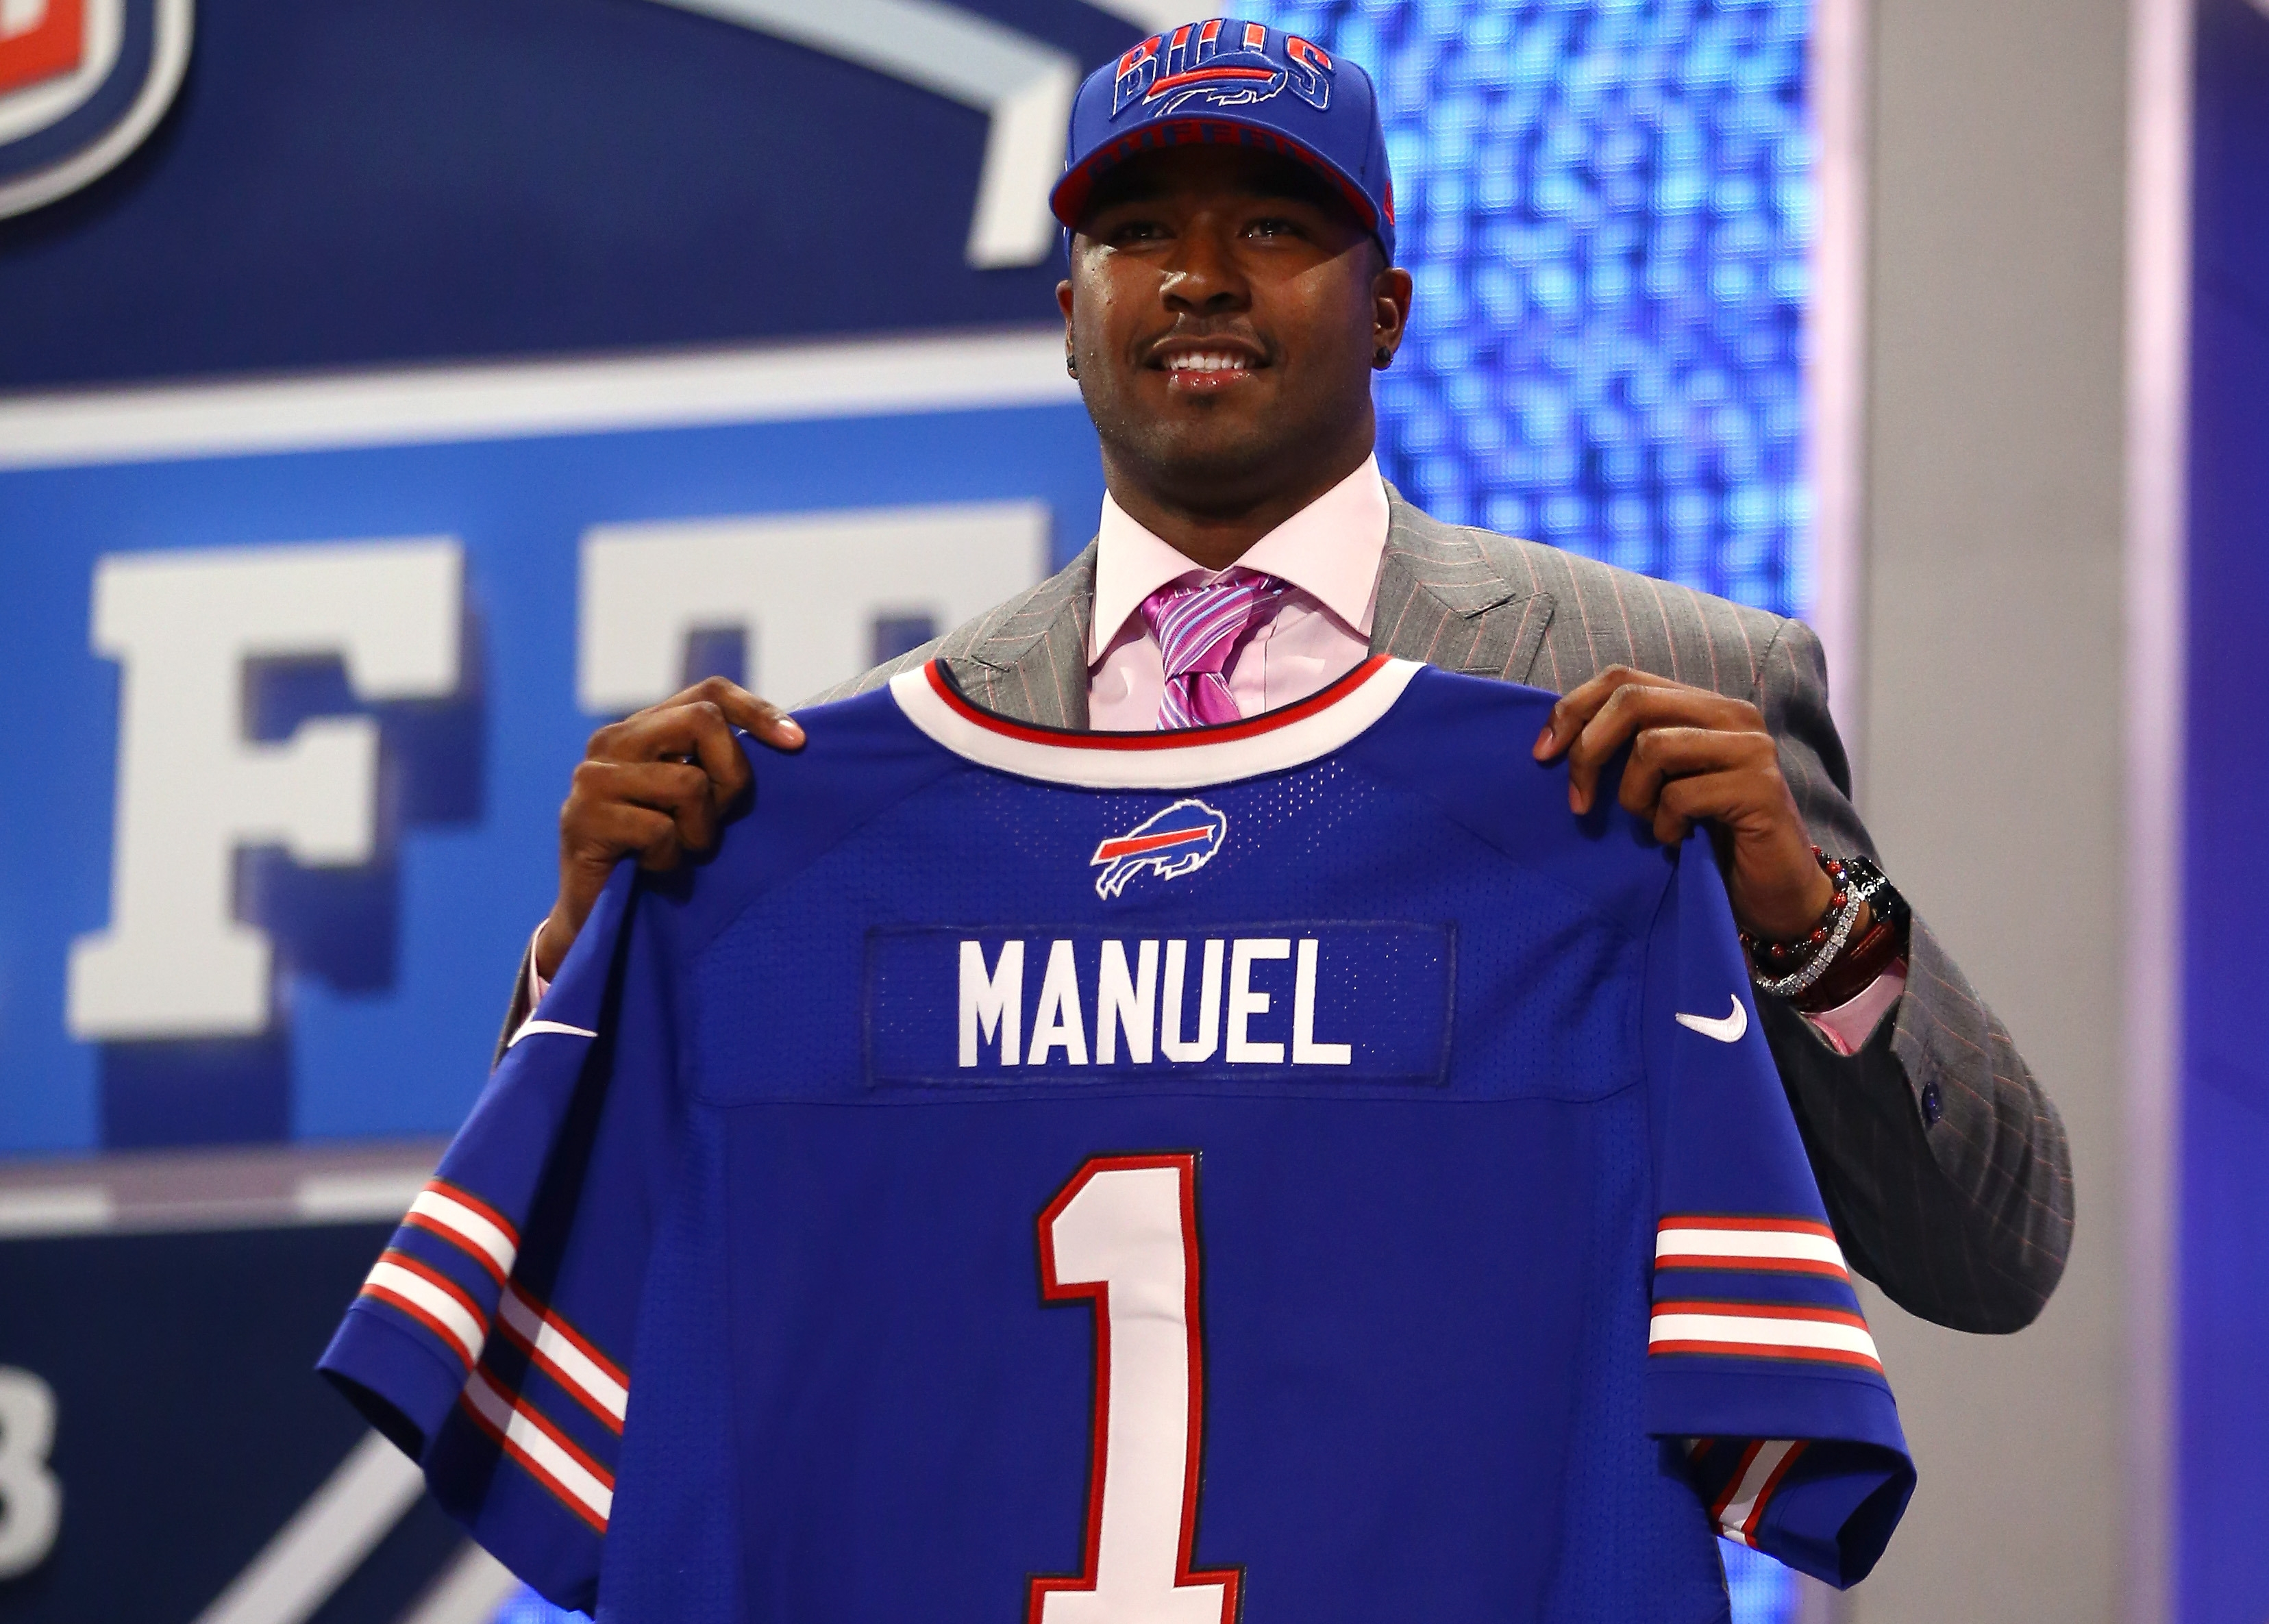 E.J. Manuel of the Florida State Seminoles holds up a jersey on stage after he was picked #16 overall by the Buffalo Bills in the first round of the 2013 NFL Draft at Radio City Music Hall on April 25, 2013 in New York City.  (Photo by Al Bello/Getty Images)